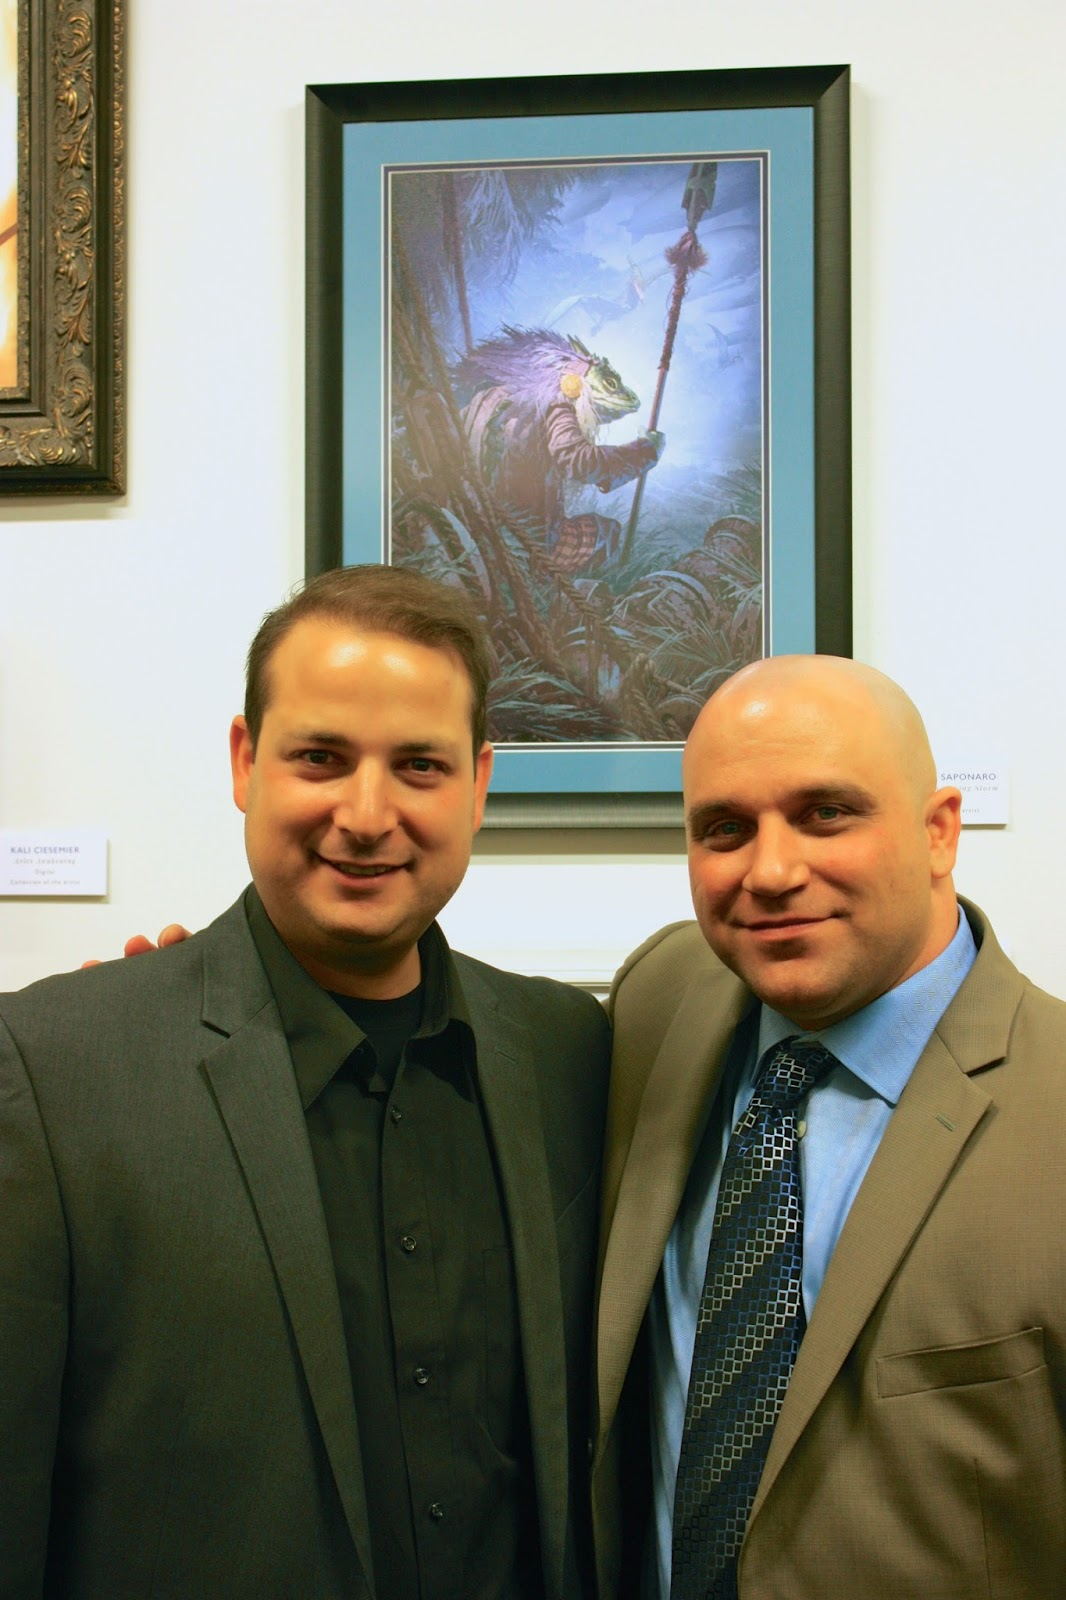 Dominick Saponaro and Matthew Kalamidas Society of Illustrators Reception